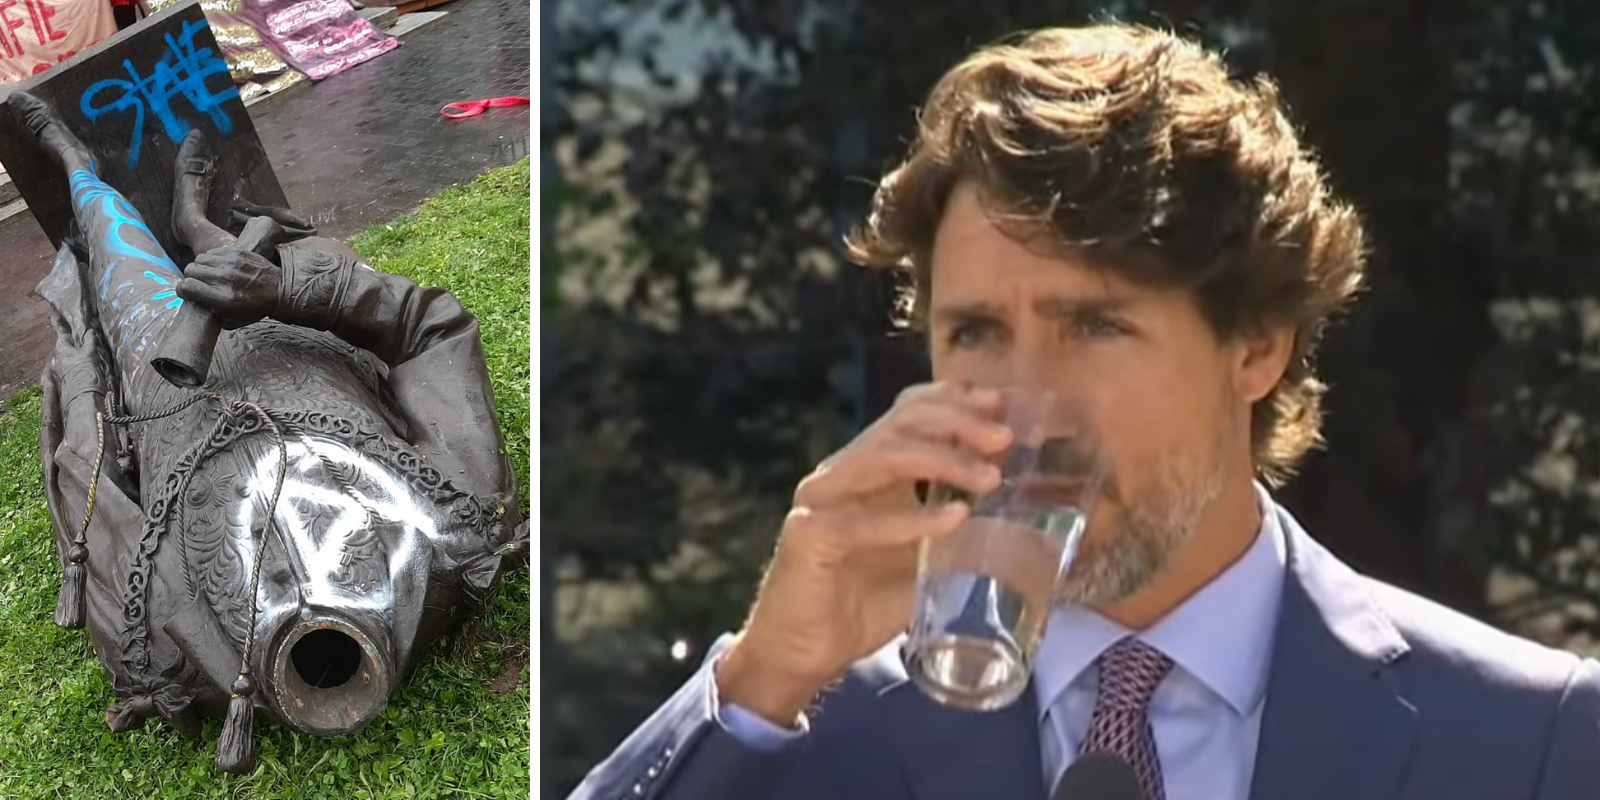 Trudeau blames 'extreme right' for dividing Canadians after John A. Macdonald statue toppled